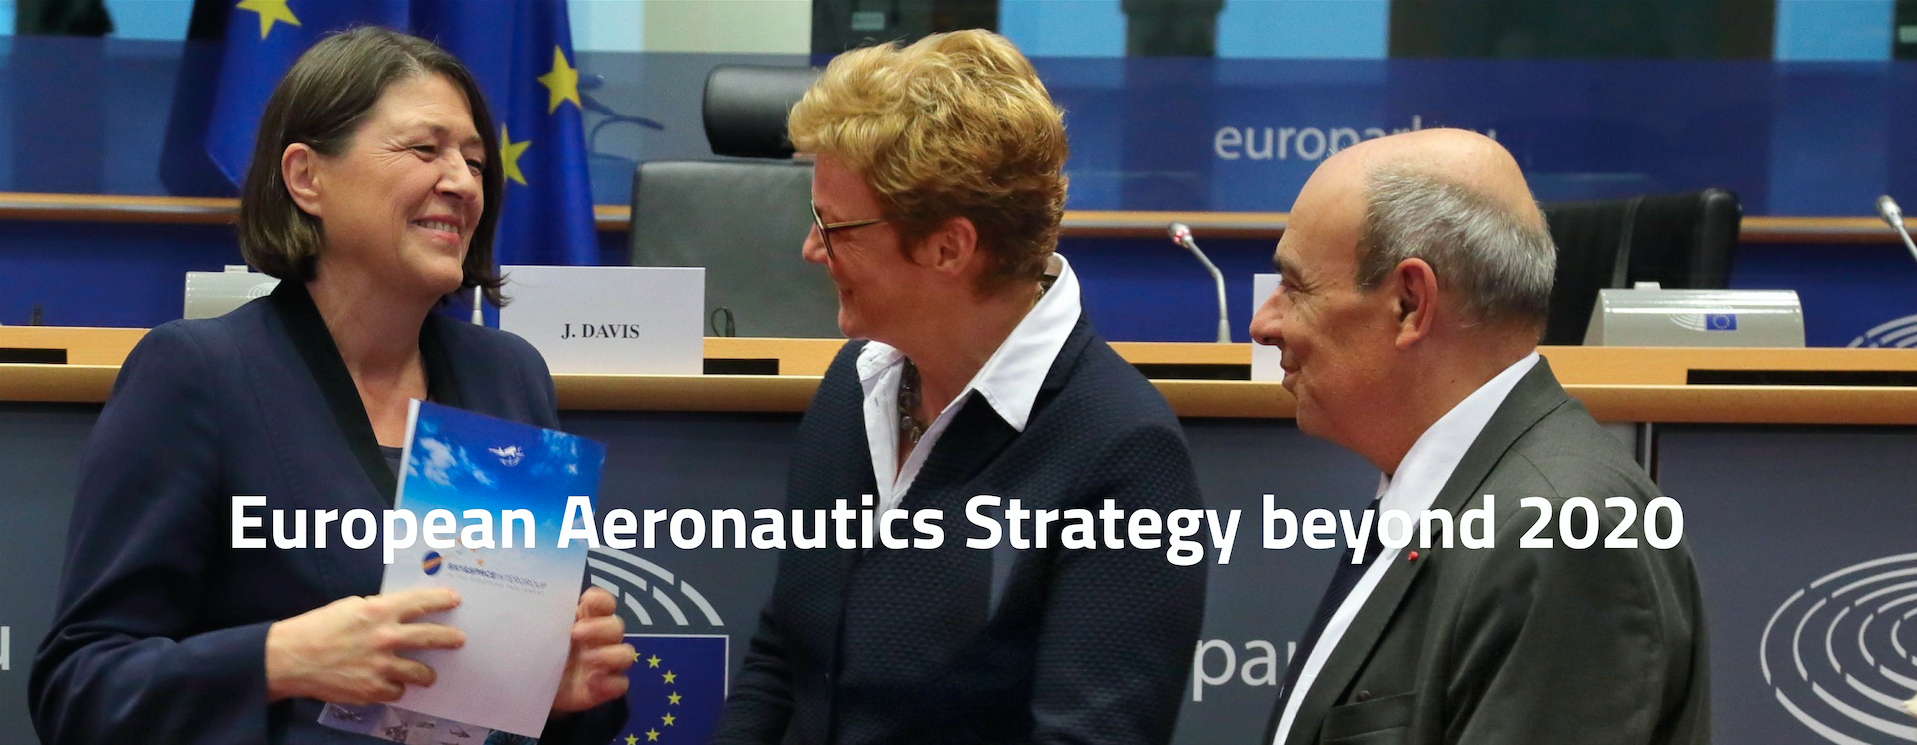 EU Aeronautics beyond 2020